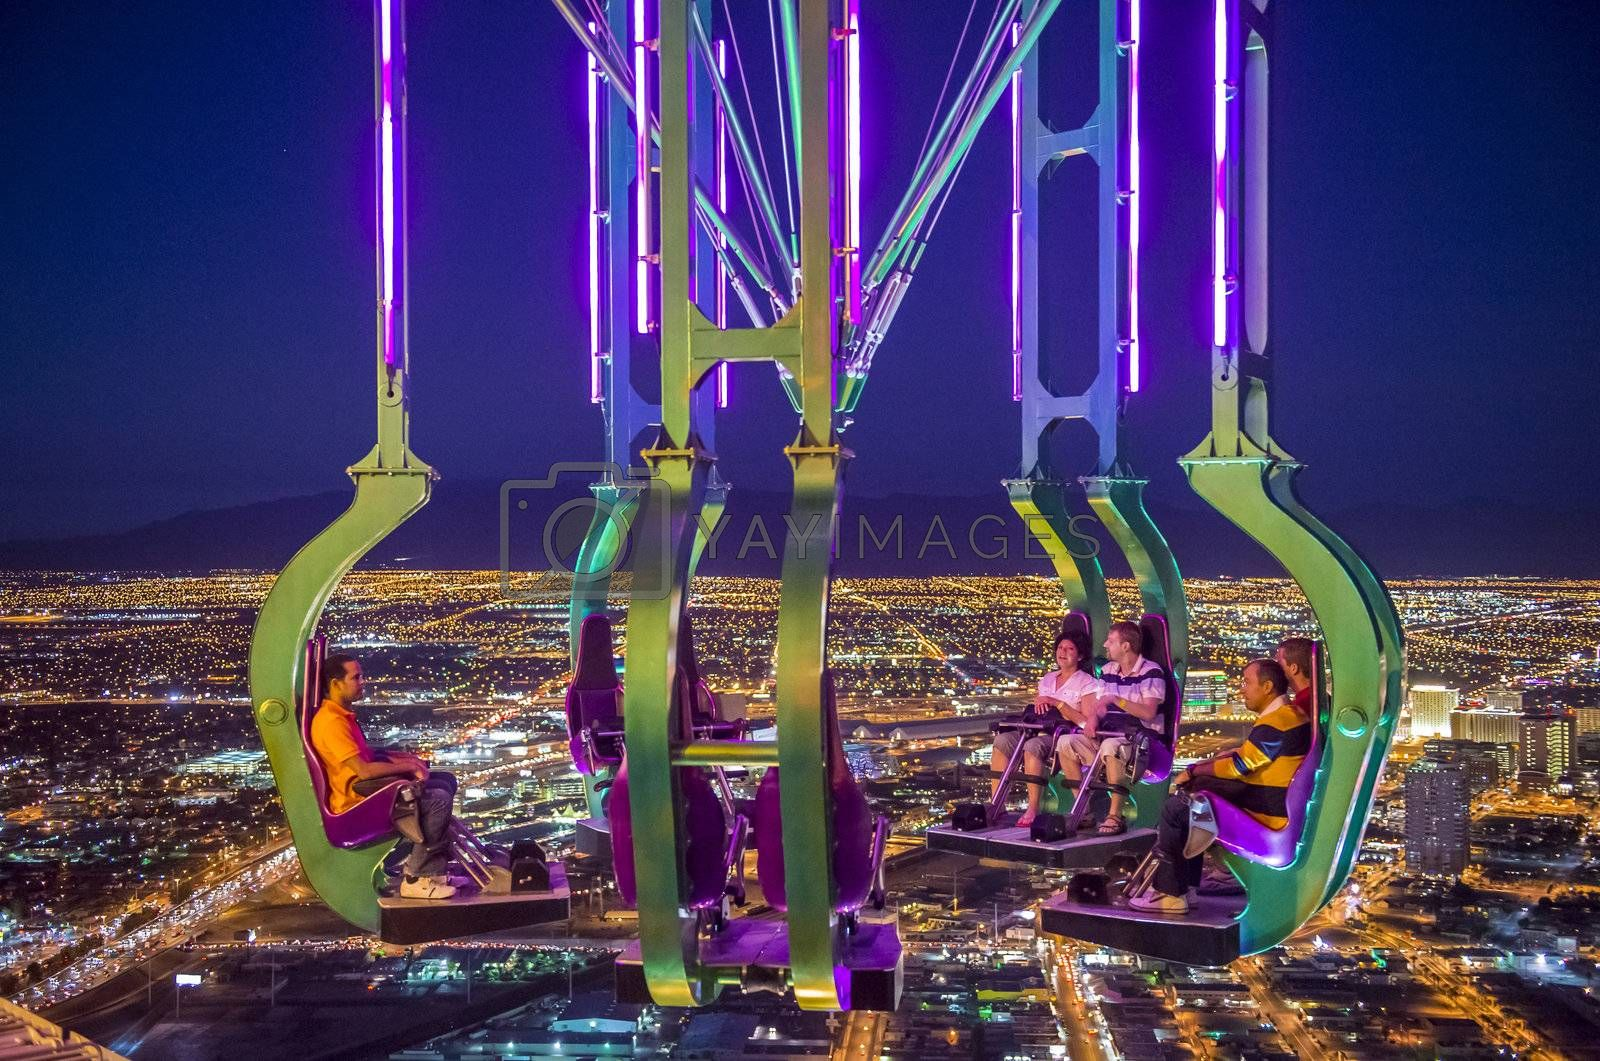 LAS VEGAS - NOVEMBER 08: The x-stream thrill ride on the top of Stratosphere tower on November 08, 2012 in Las Vegas. Las Vegas in 2012 is projected to break the all-time visitor volume record of 39-plus million visitors